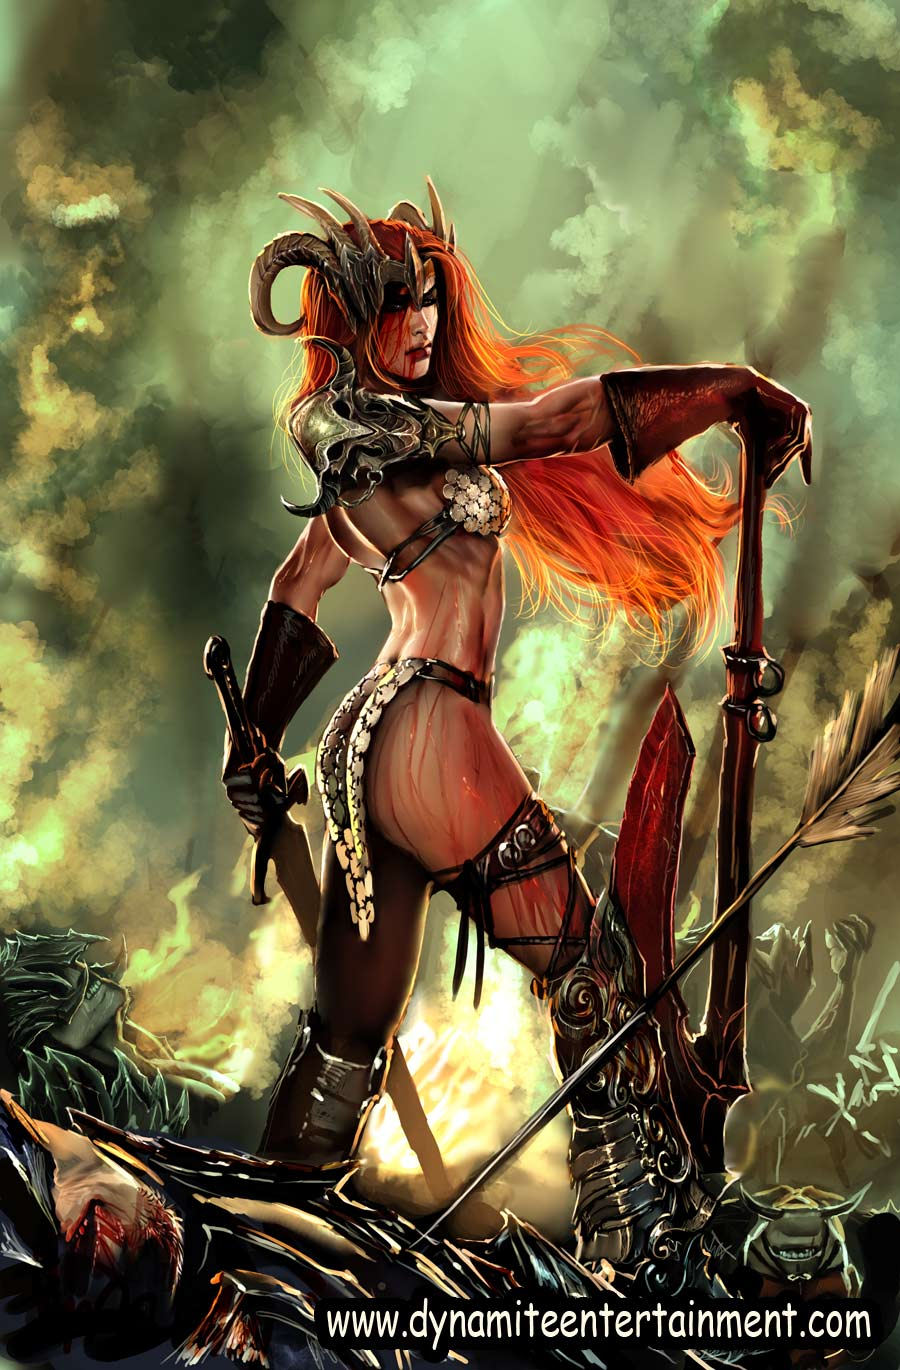 Superhero Wallpapers-Red Sonja 9